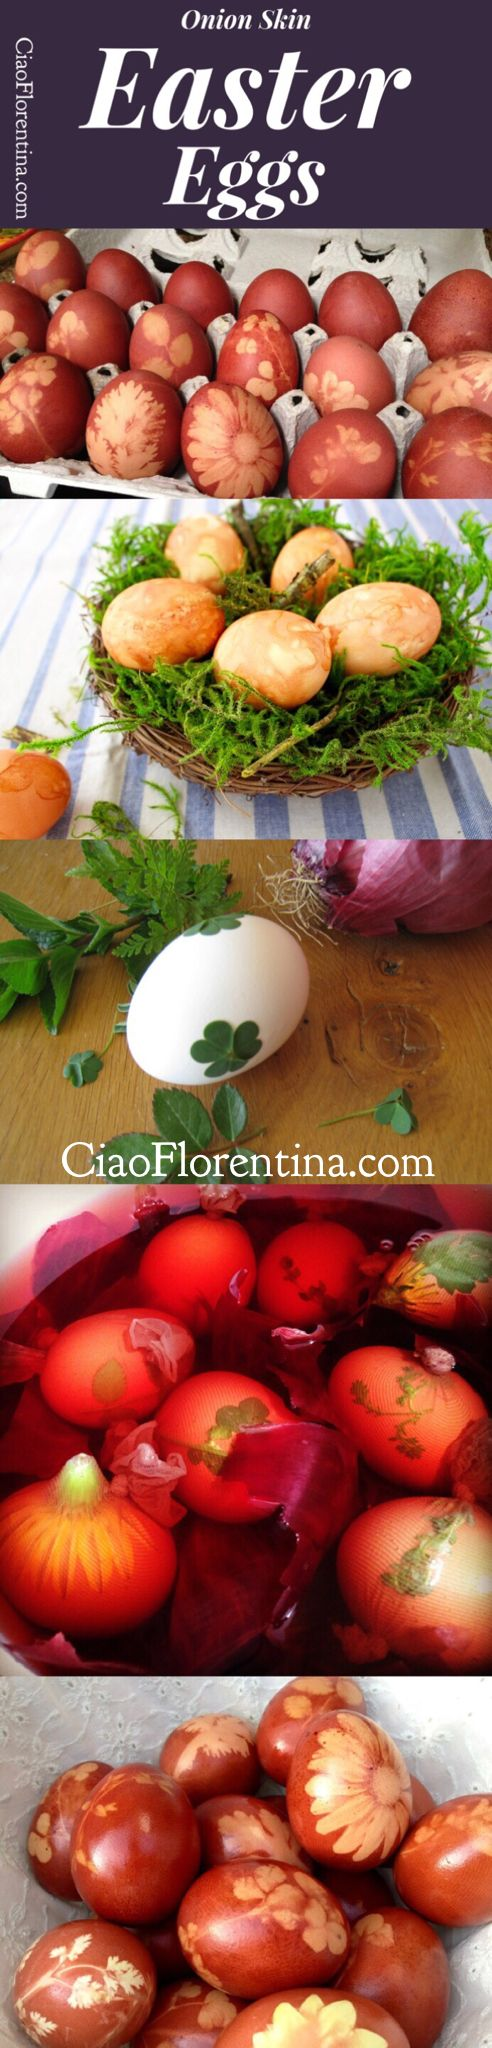 DIY Onion Skin Easter Eggs with Herbs and Flowers | CiaoFlorentina.com @CiaoFlorentina